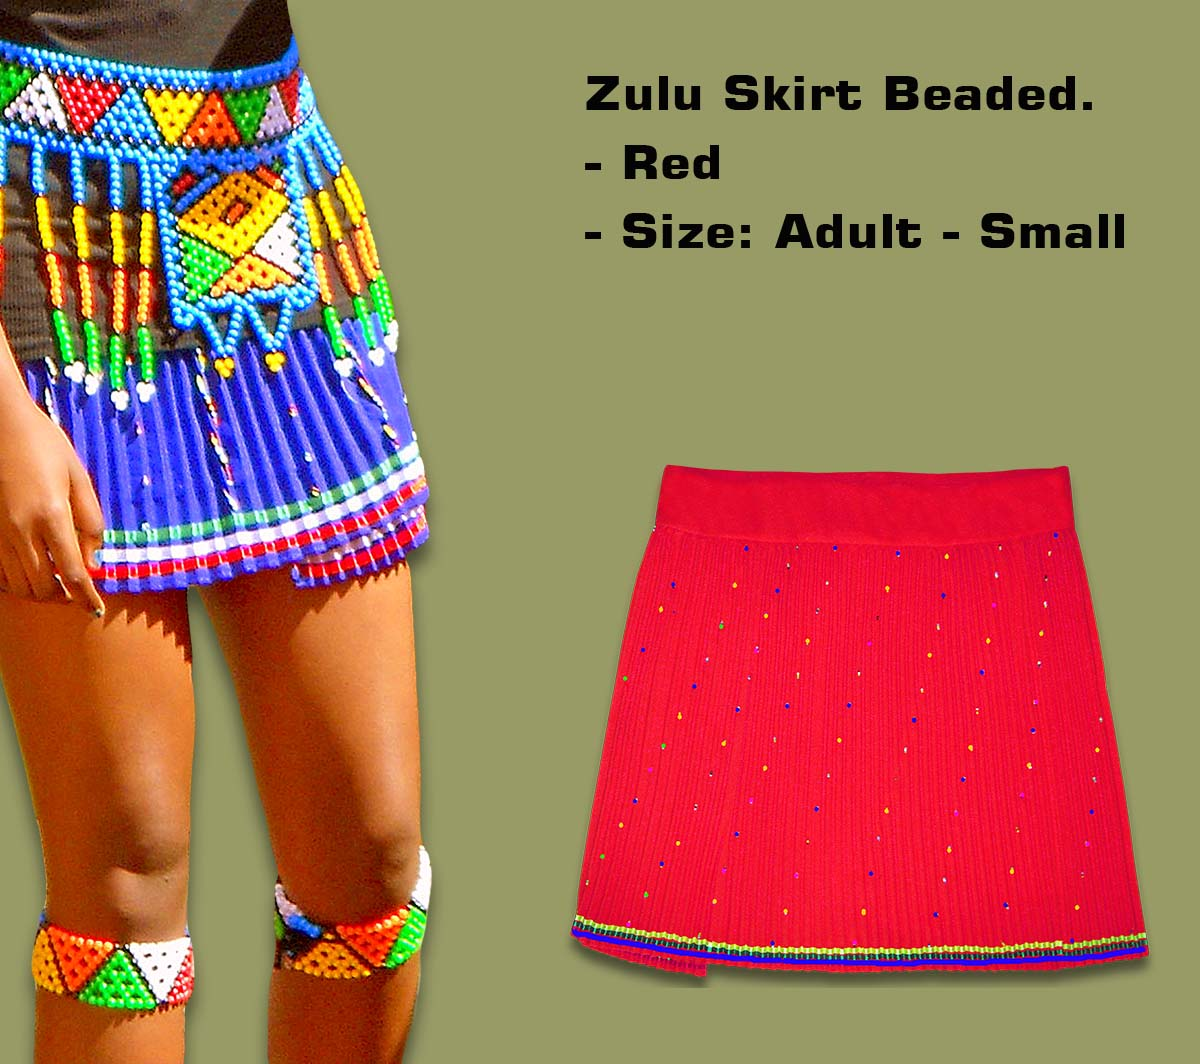 Beaded Zulu Skirt Adult Red Small